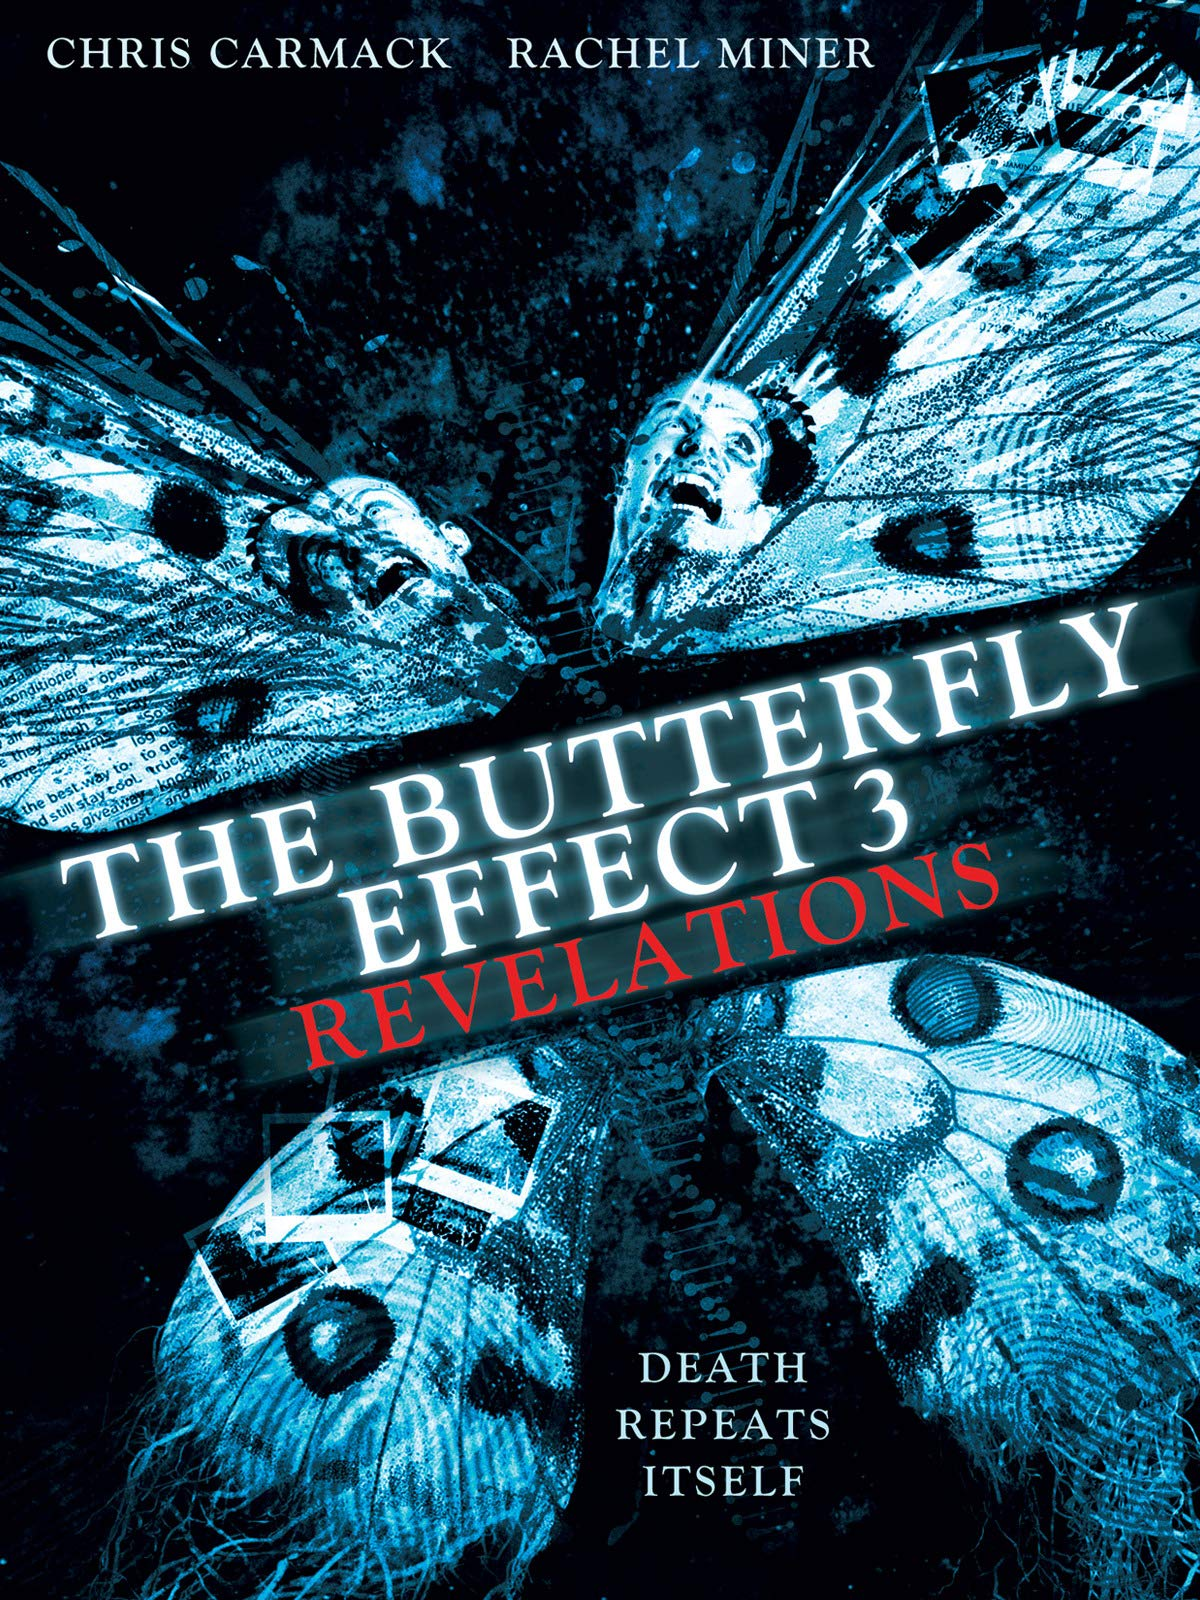 The Butterfly Effect 3: Revelations on Amazon Prime Video UK